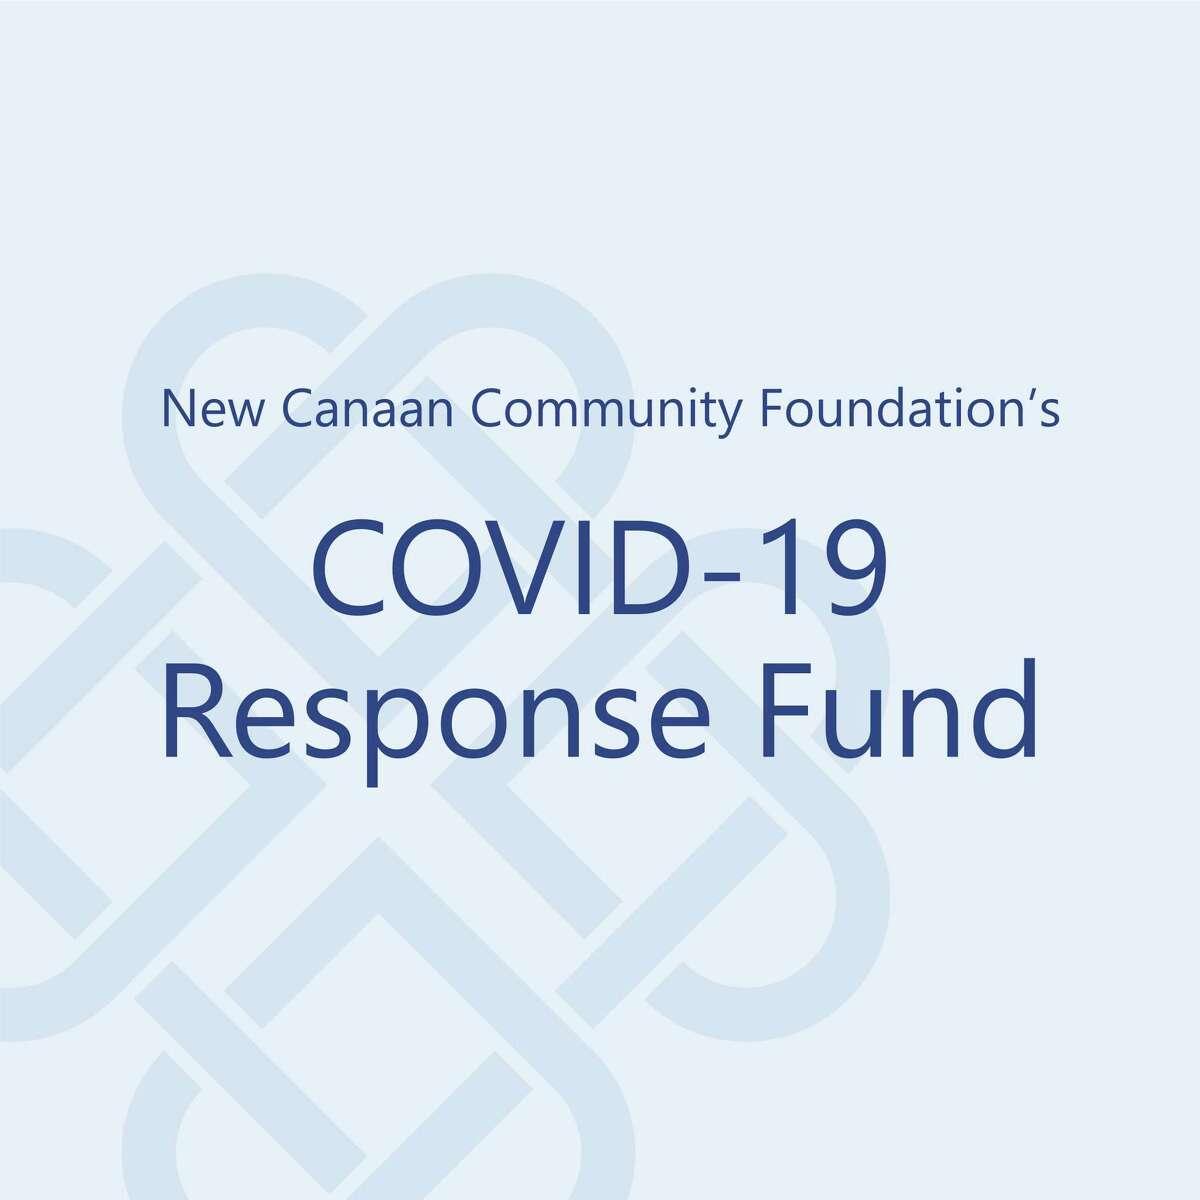 A group of donors has formed a challenge match benefitting the New Canaan Community Foundation's COVID-19 Response Fund. The group will match dollars raised, up to $75,000.